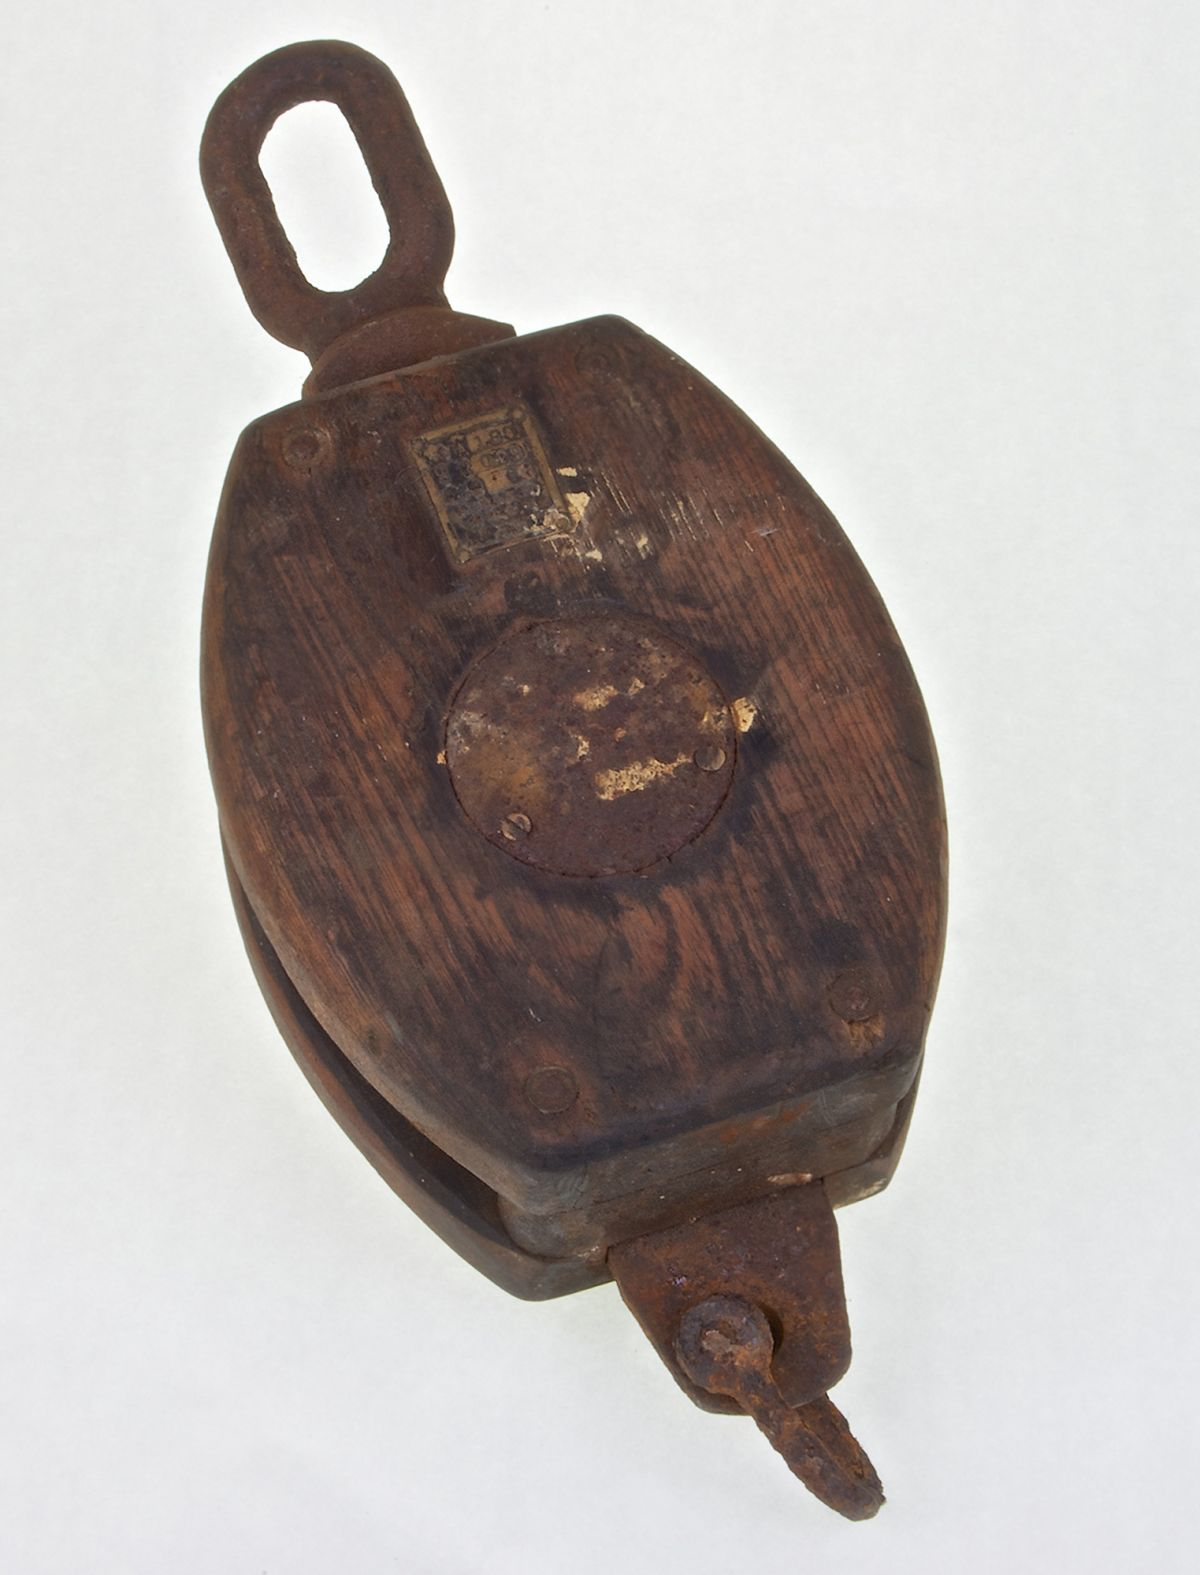 SINGLE WOODEN BLOCK PULLEY